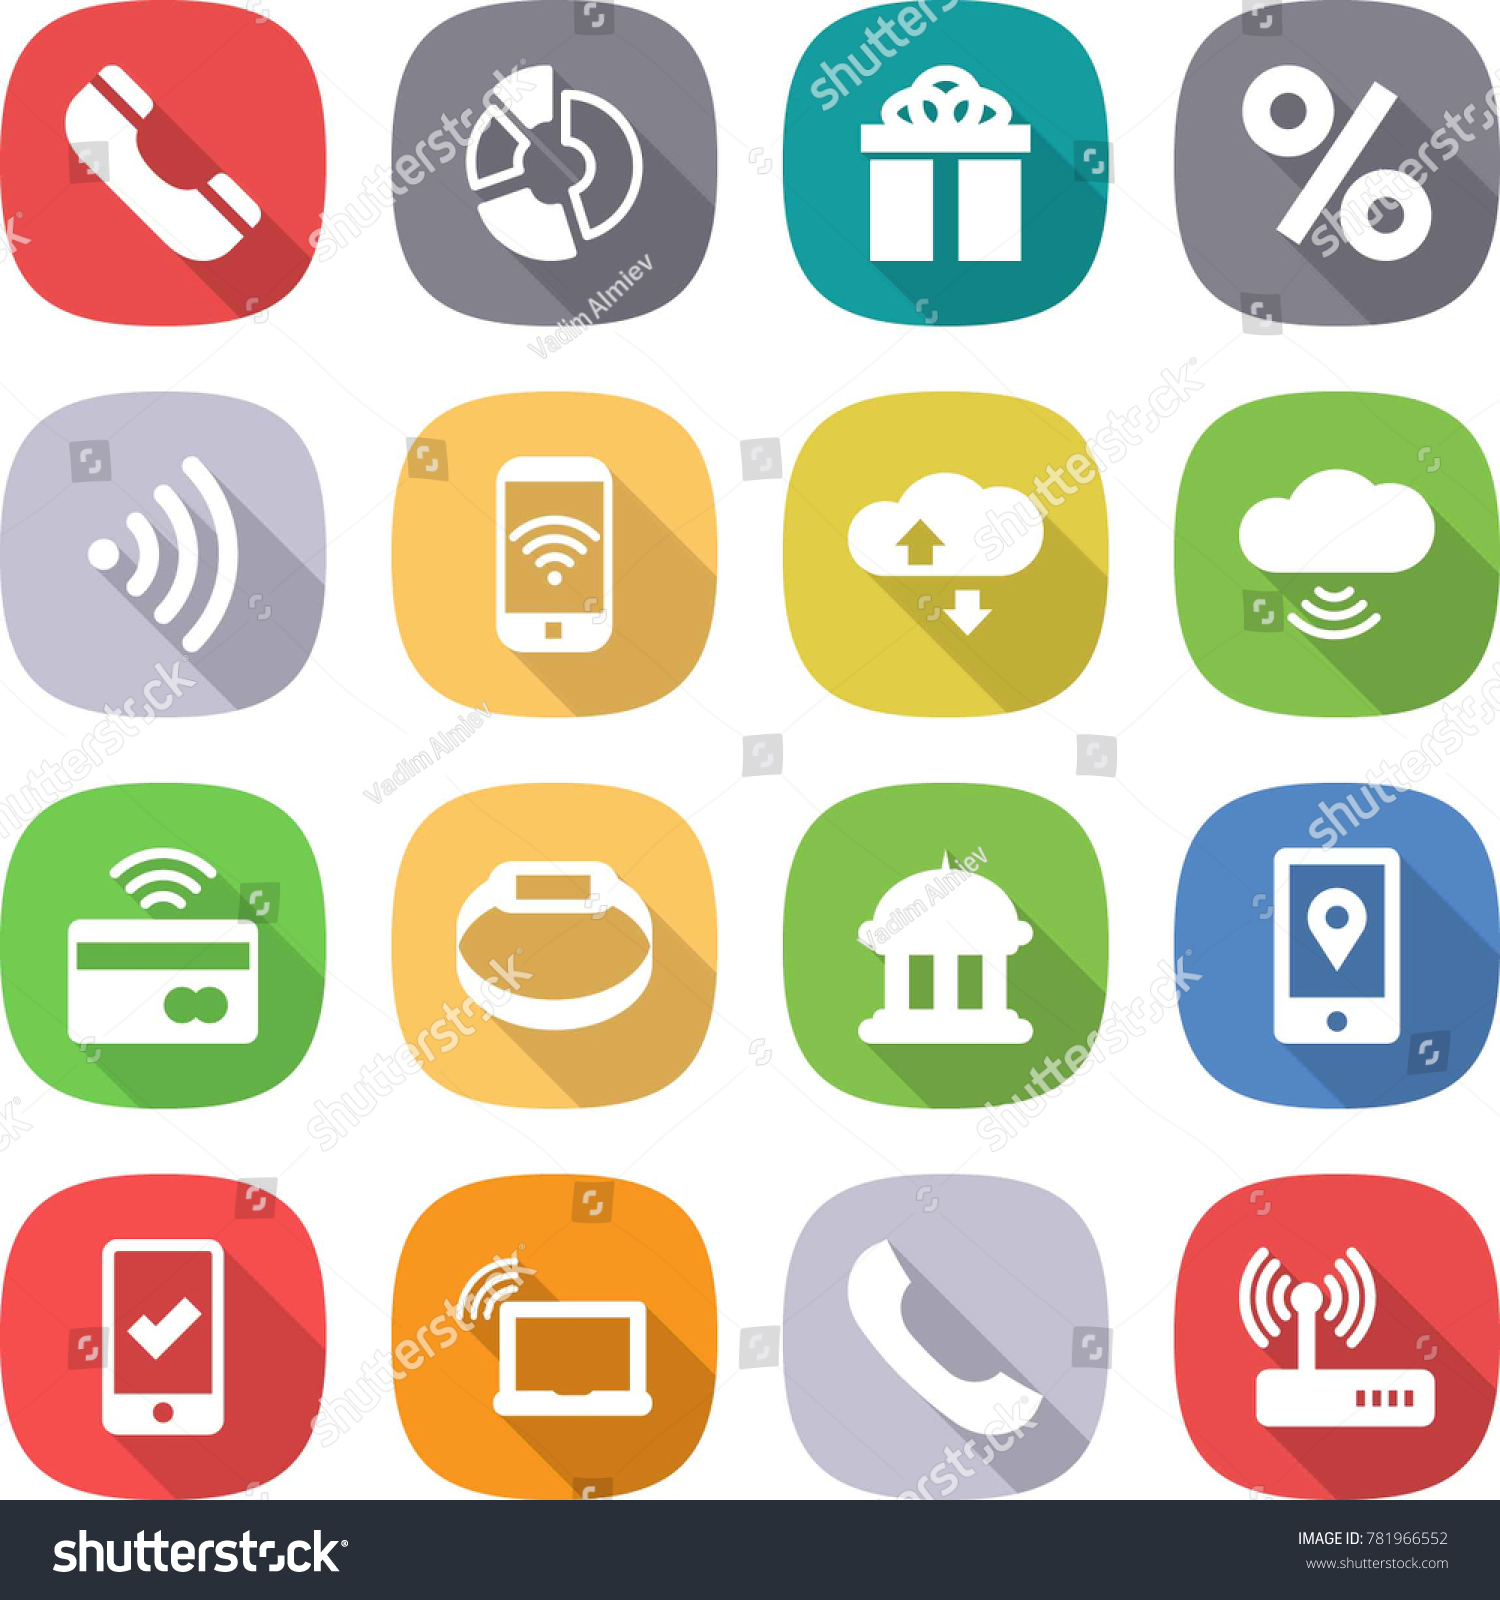 hight resolution of flat vector icon set phone vector circle diagram gift percent wireless cloud service tap to pay smart bracelet goverment house mobile location